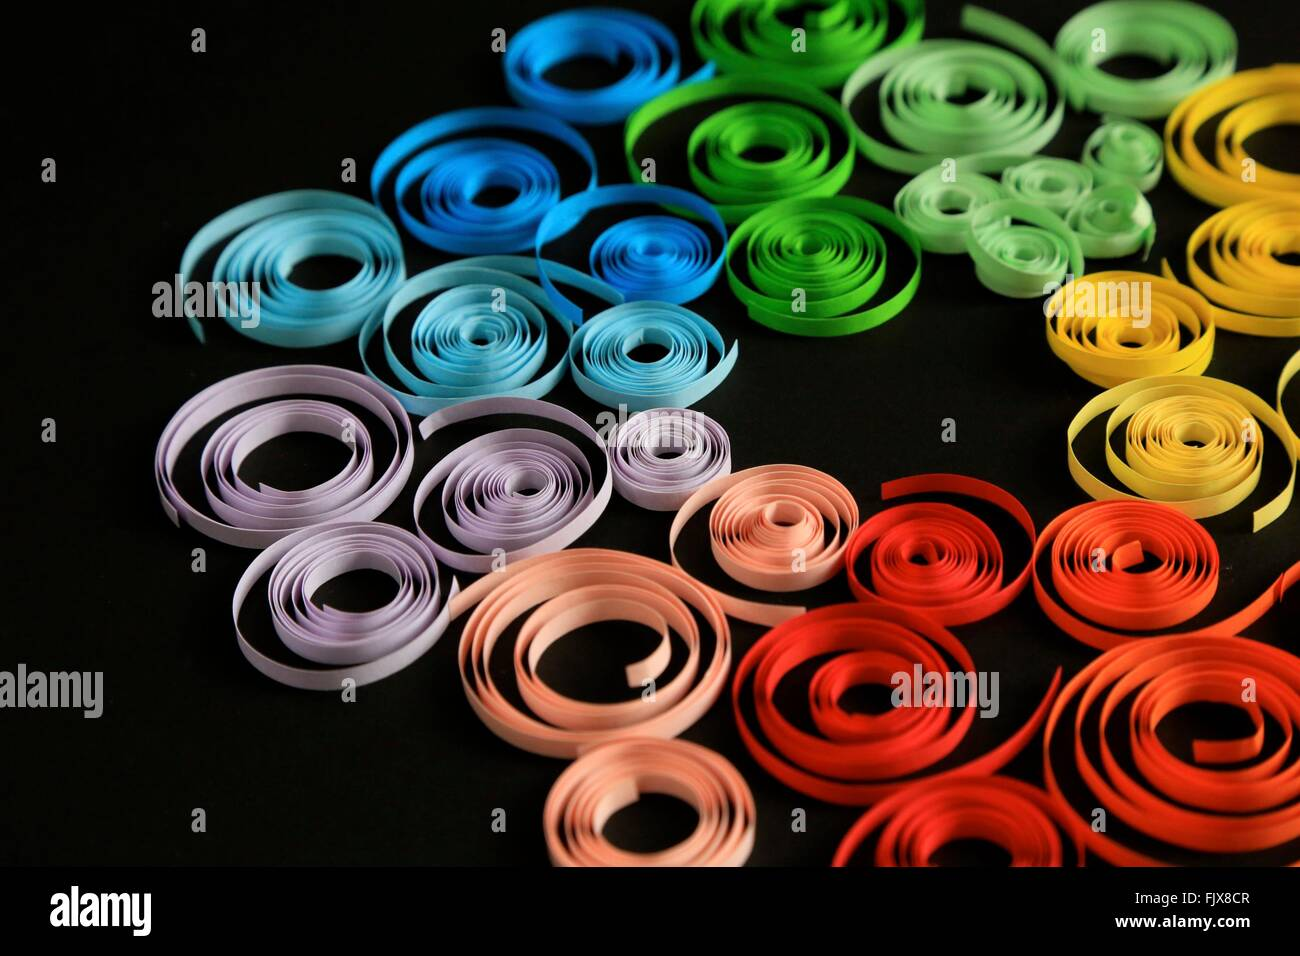 High Angle View Of Colorful Ribbon On Black Background - Stock Image